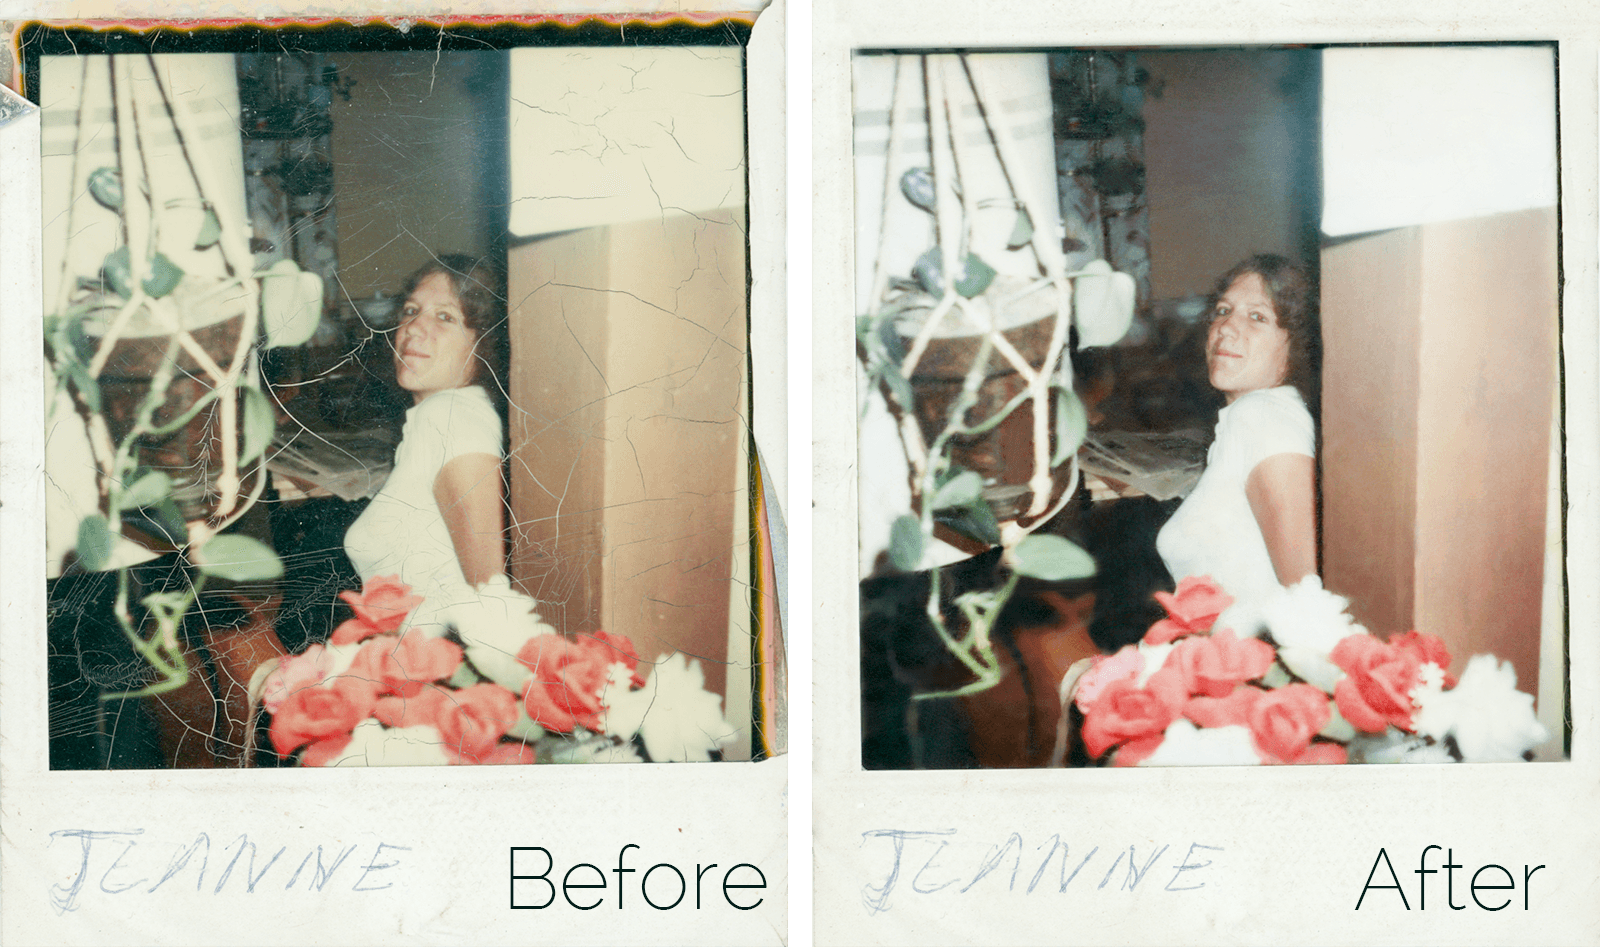 Jeanne_before-after.png